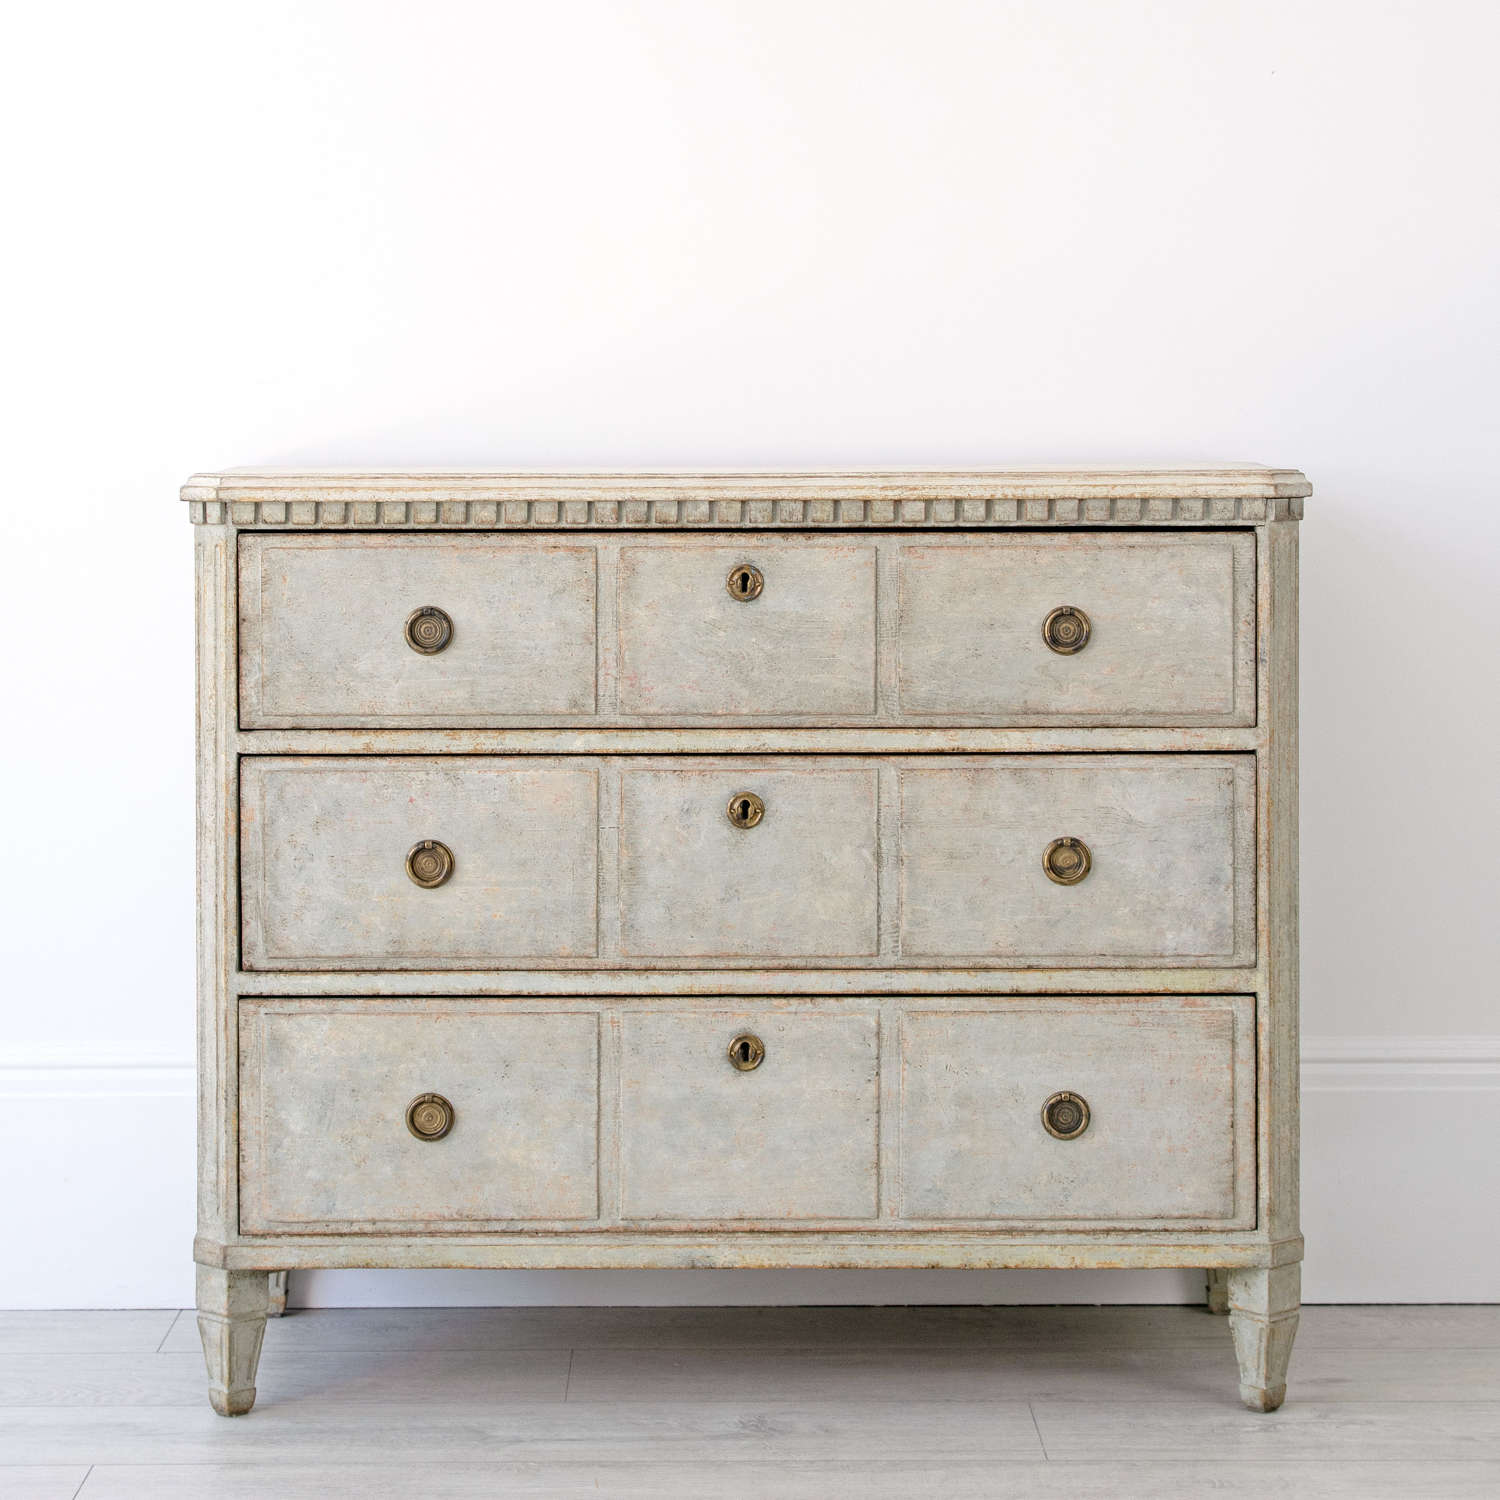 GUSTAVIAN STYLE COMMODE